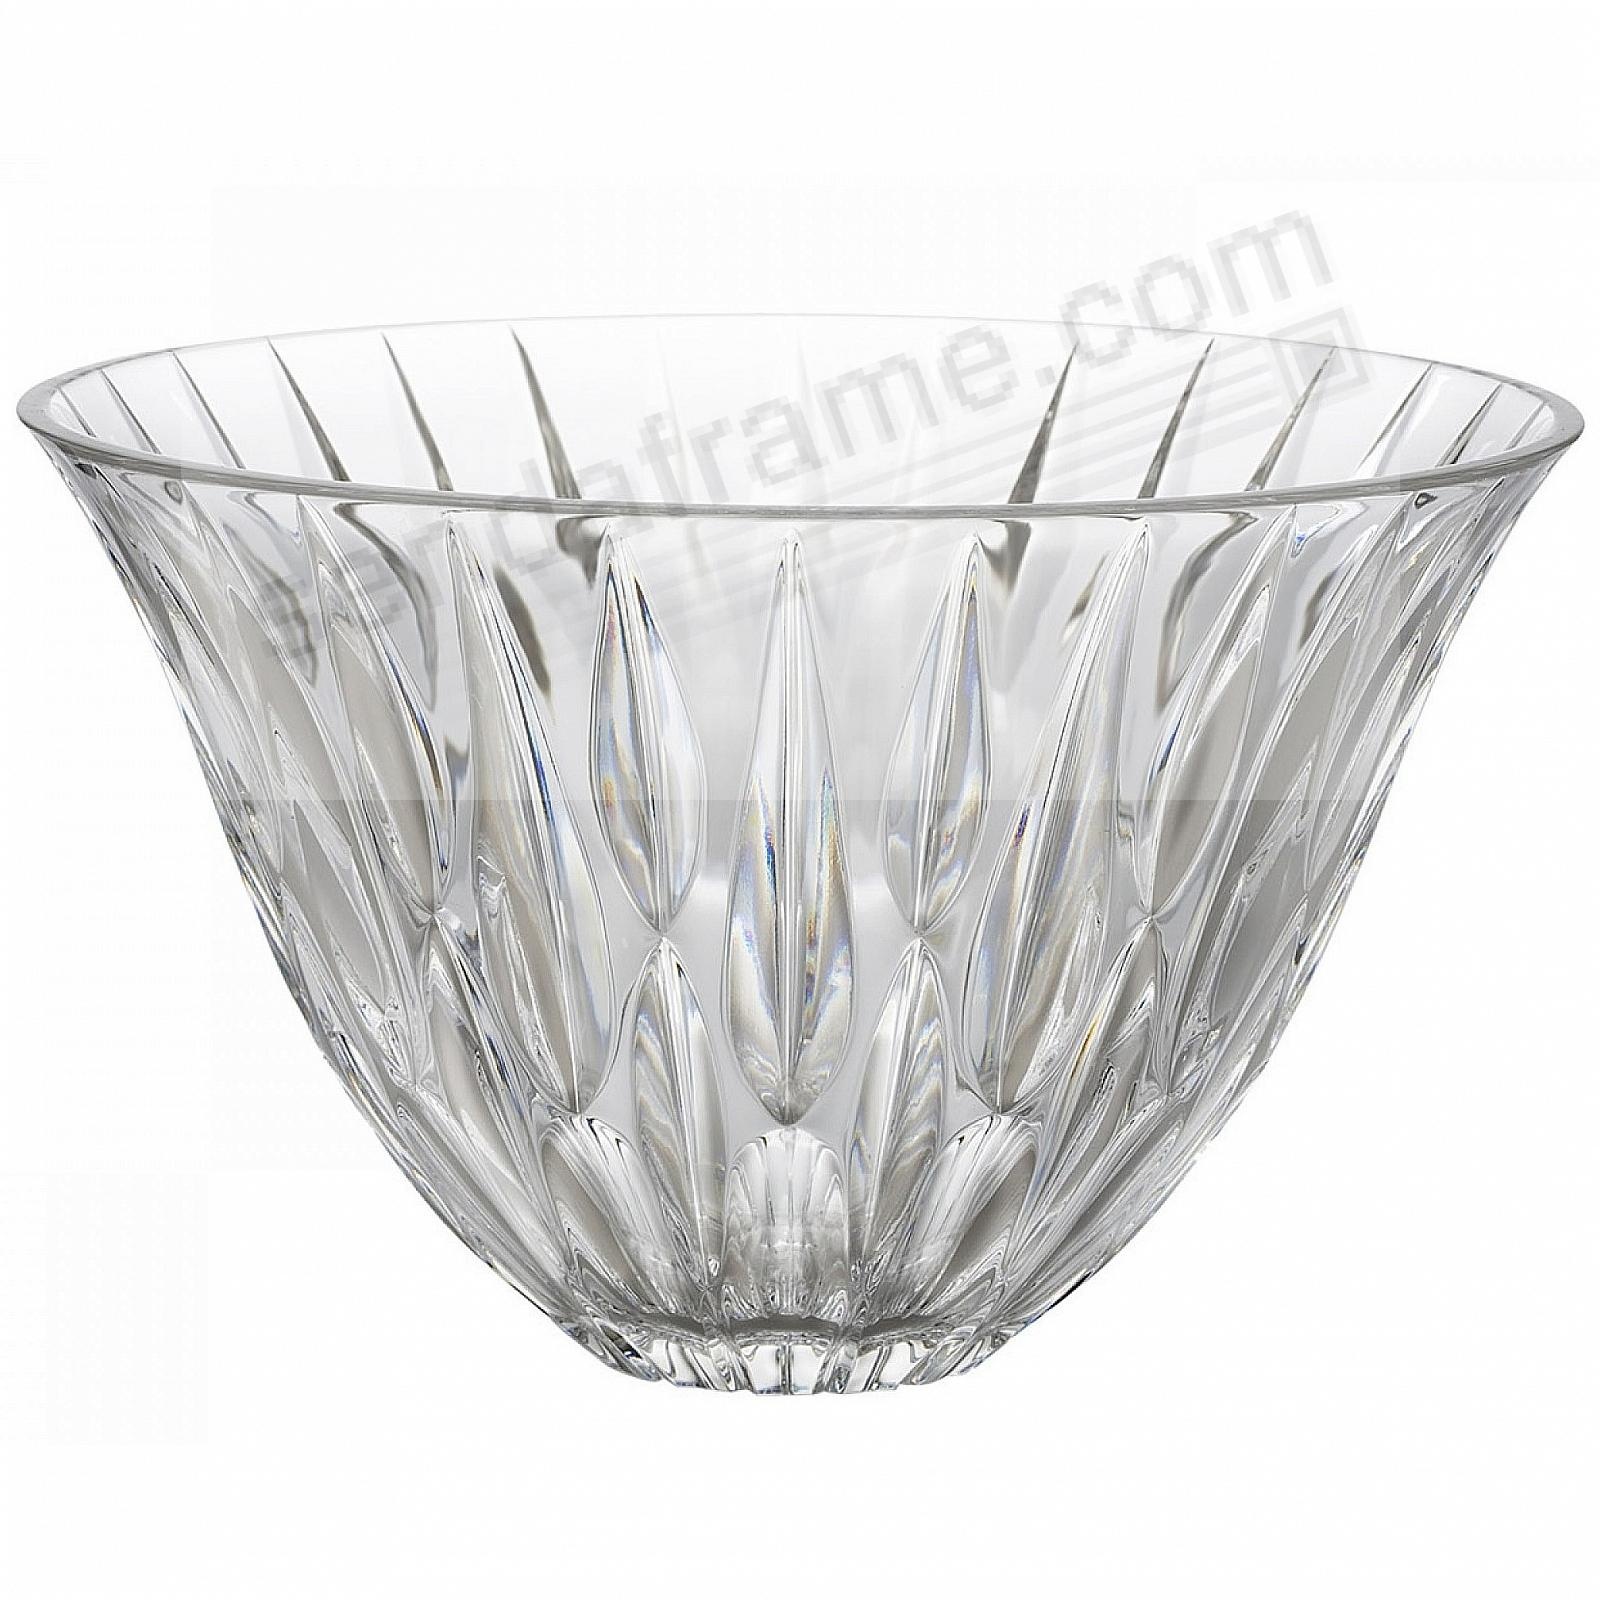 The Original RAINFALL 10-inch Crystal Marquis by Waterford® Bowl